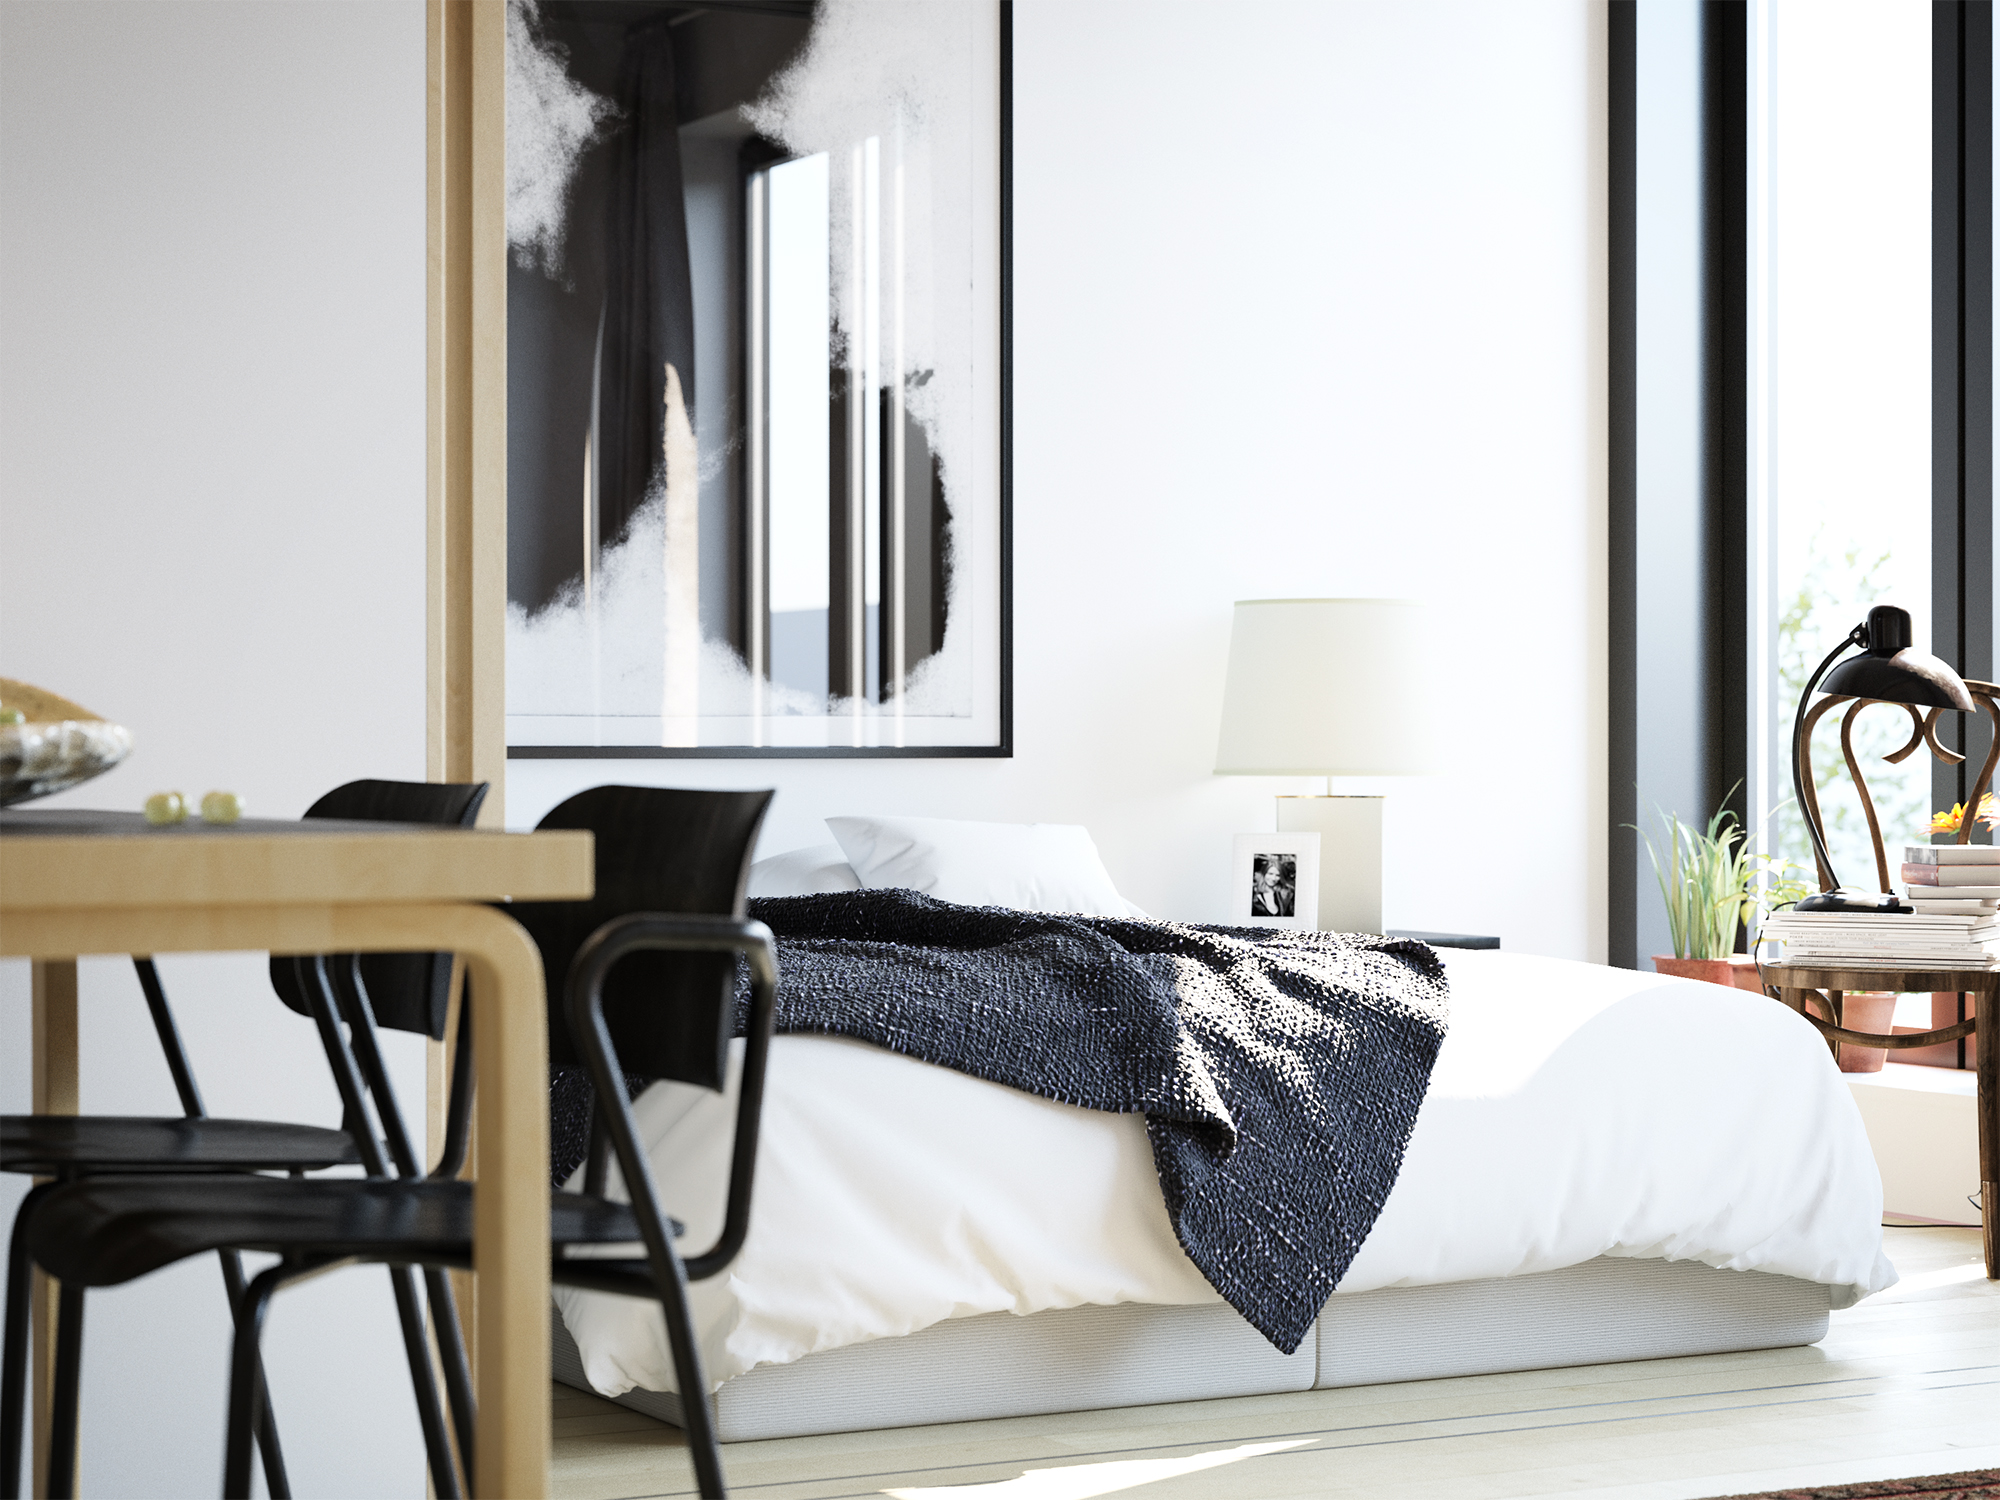 recent_spaces_pied_a_terre_04.jpg